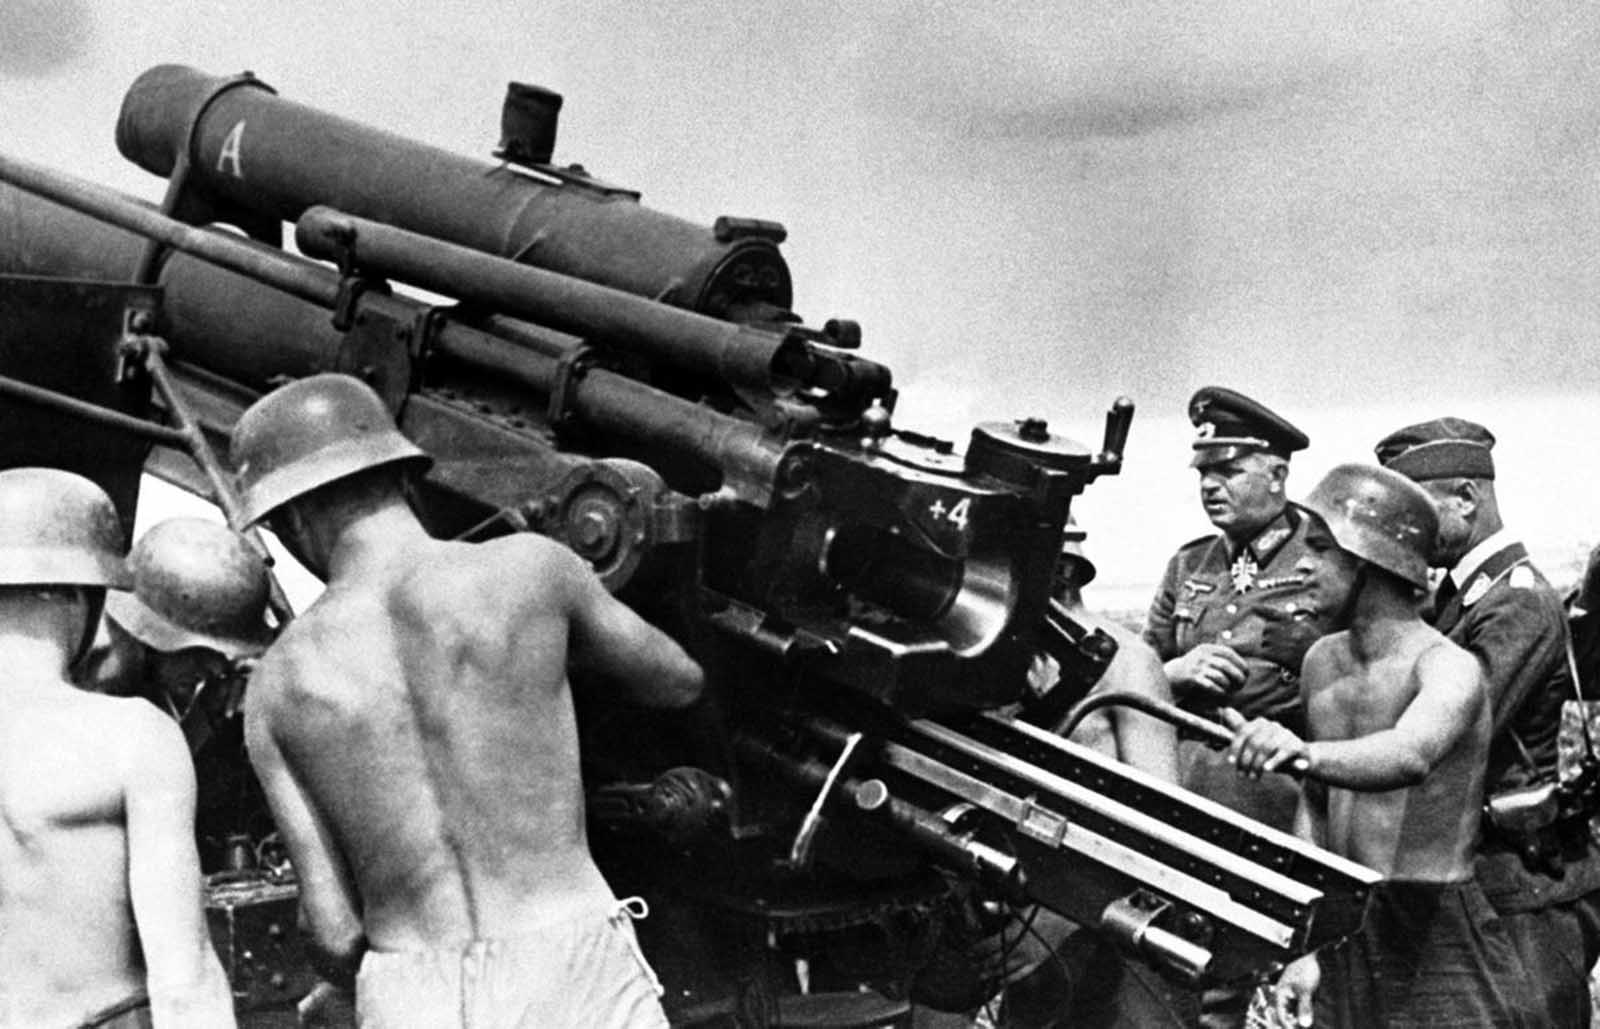 German Army Commander Colonel General Ernst Busch inspects an anti-aircraft gun position, somewhere in Germany, on Sept. 3, 1941.